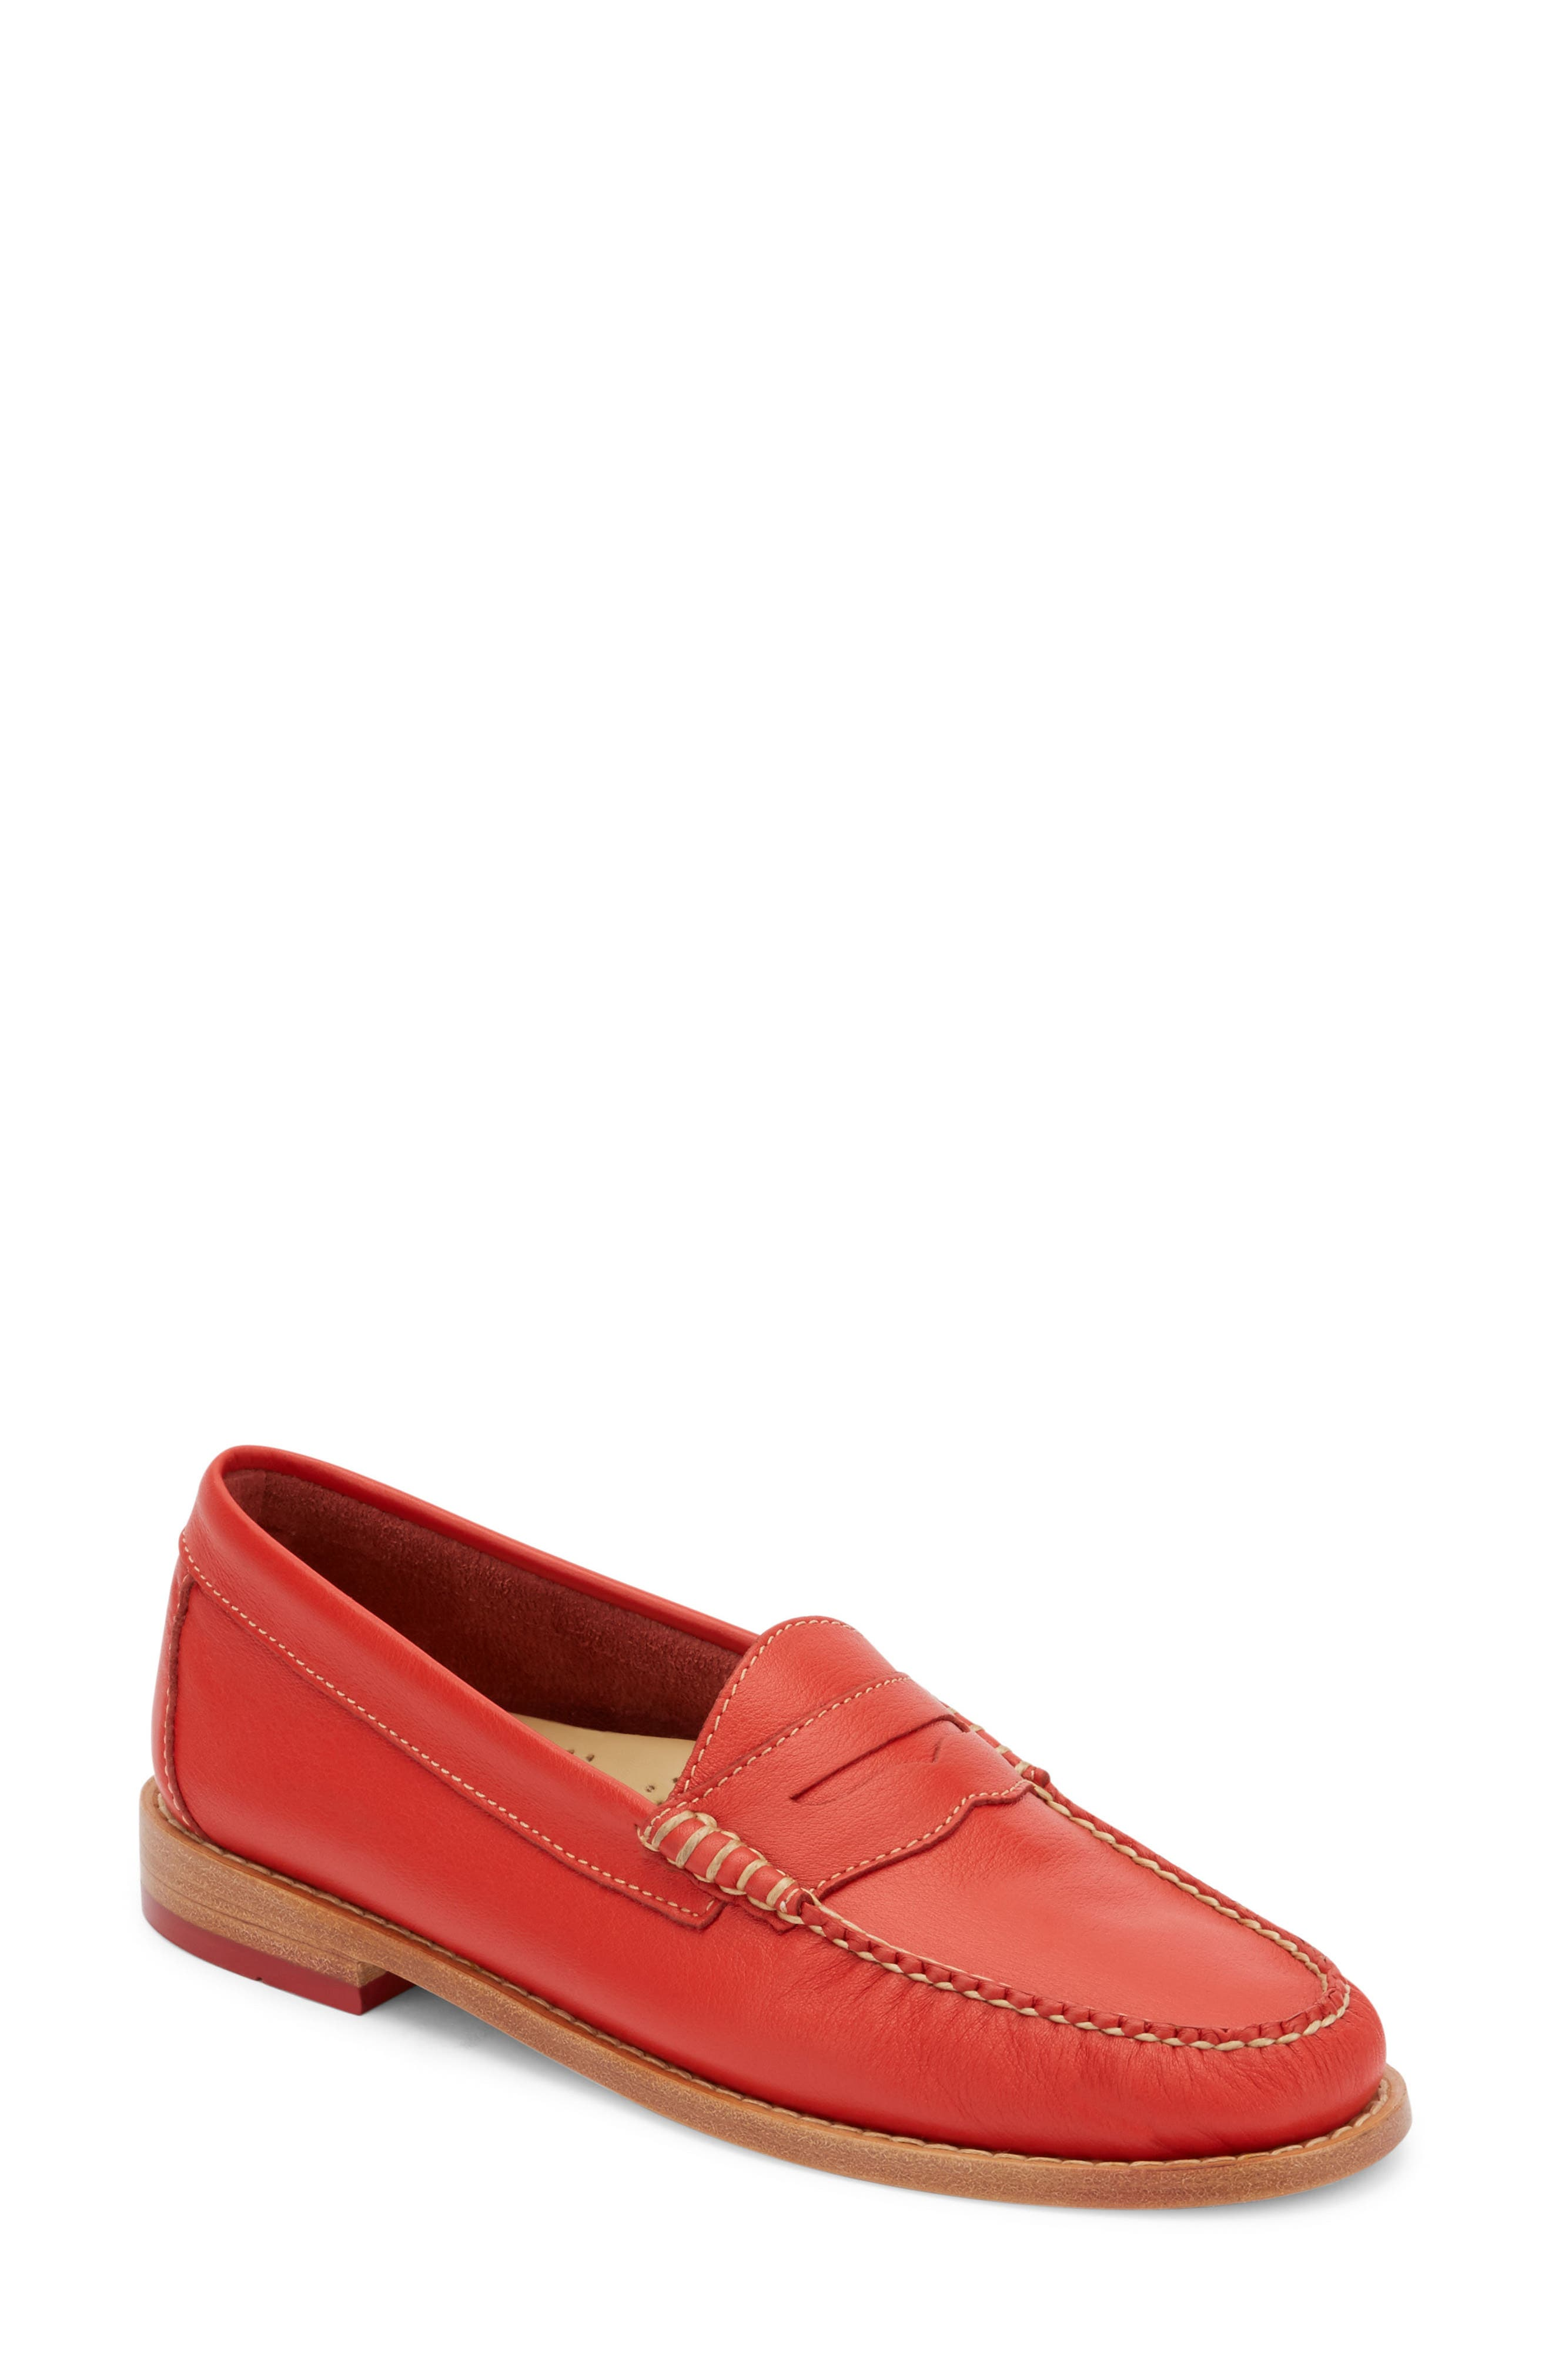 'Whitney' Loafer,                             Main thumbnail 14, color,